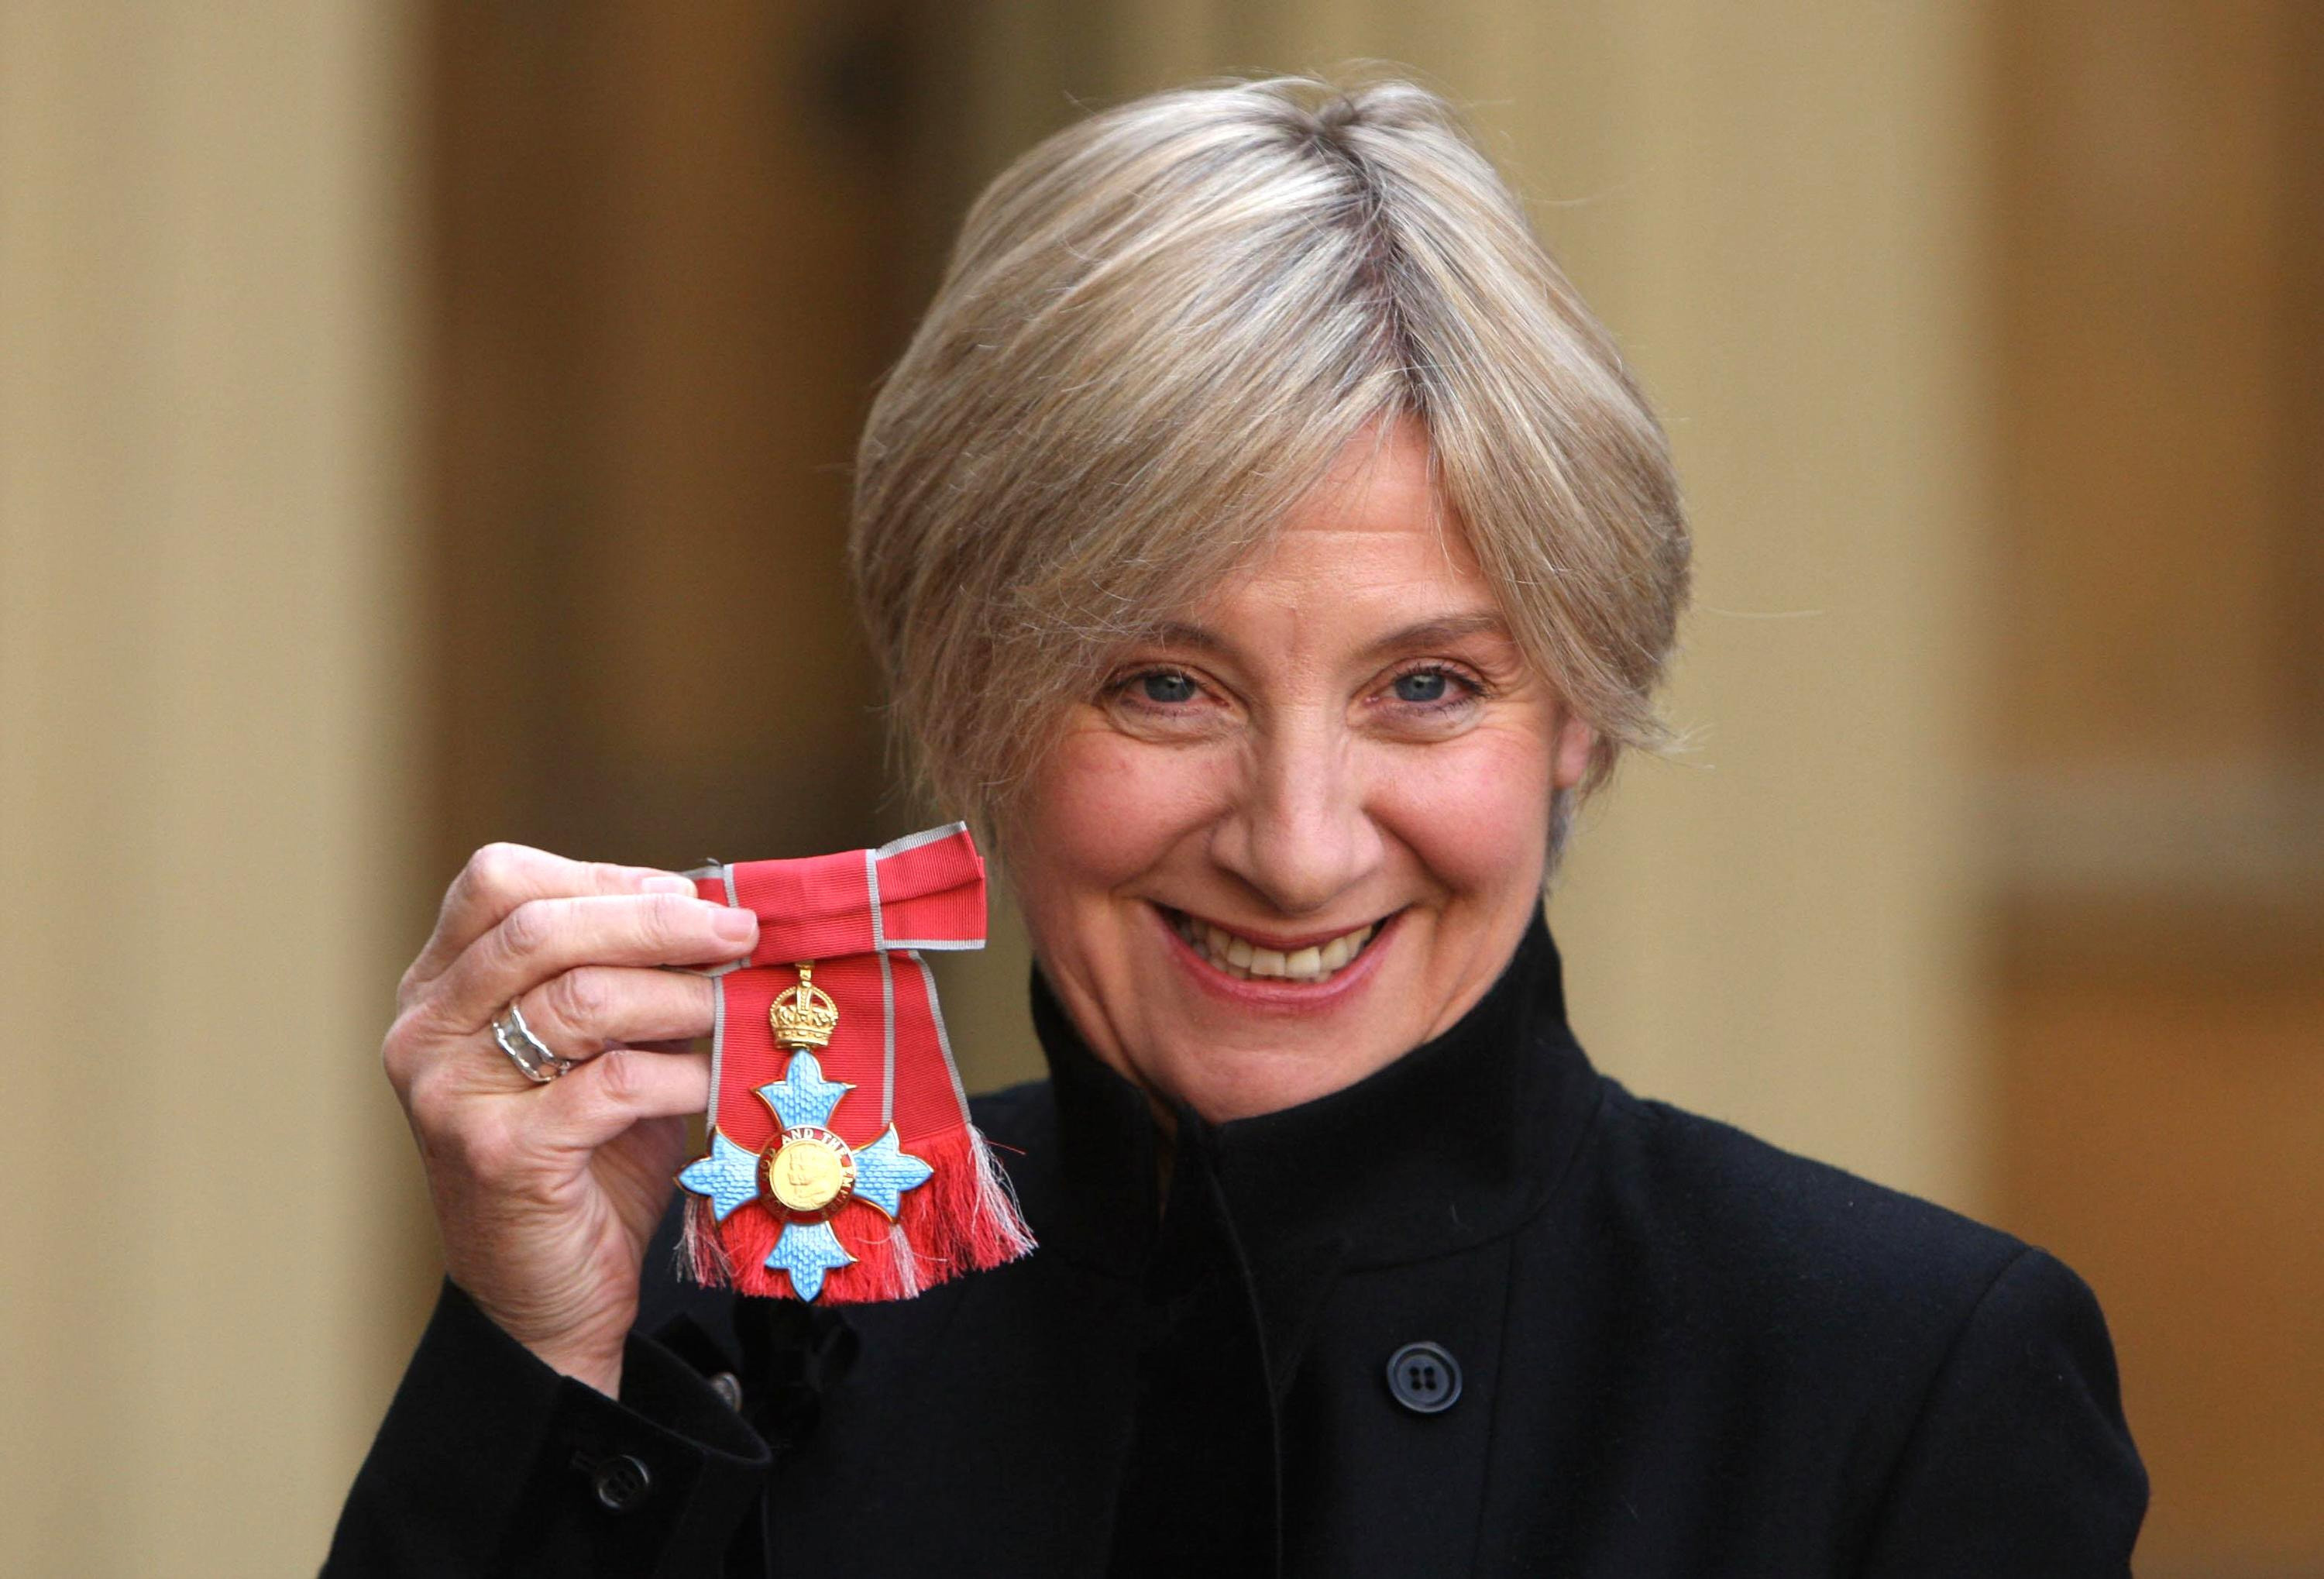 Victoria Wood has died aged 62 after a short battle with cancer, her publicist has said.